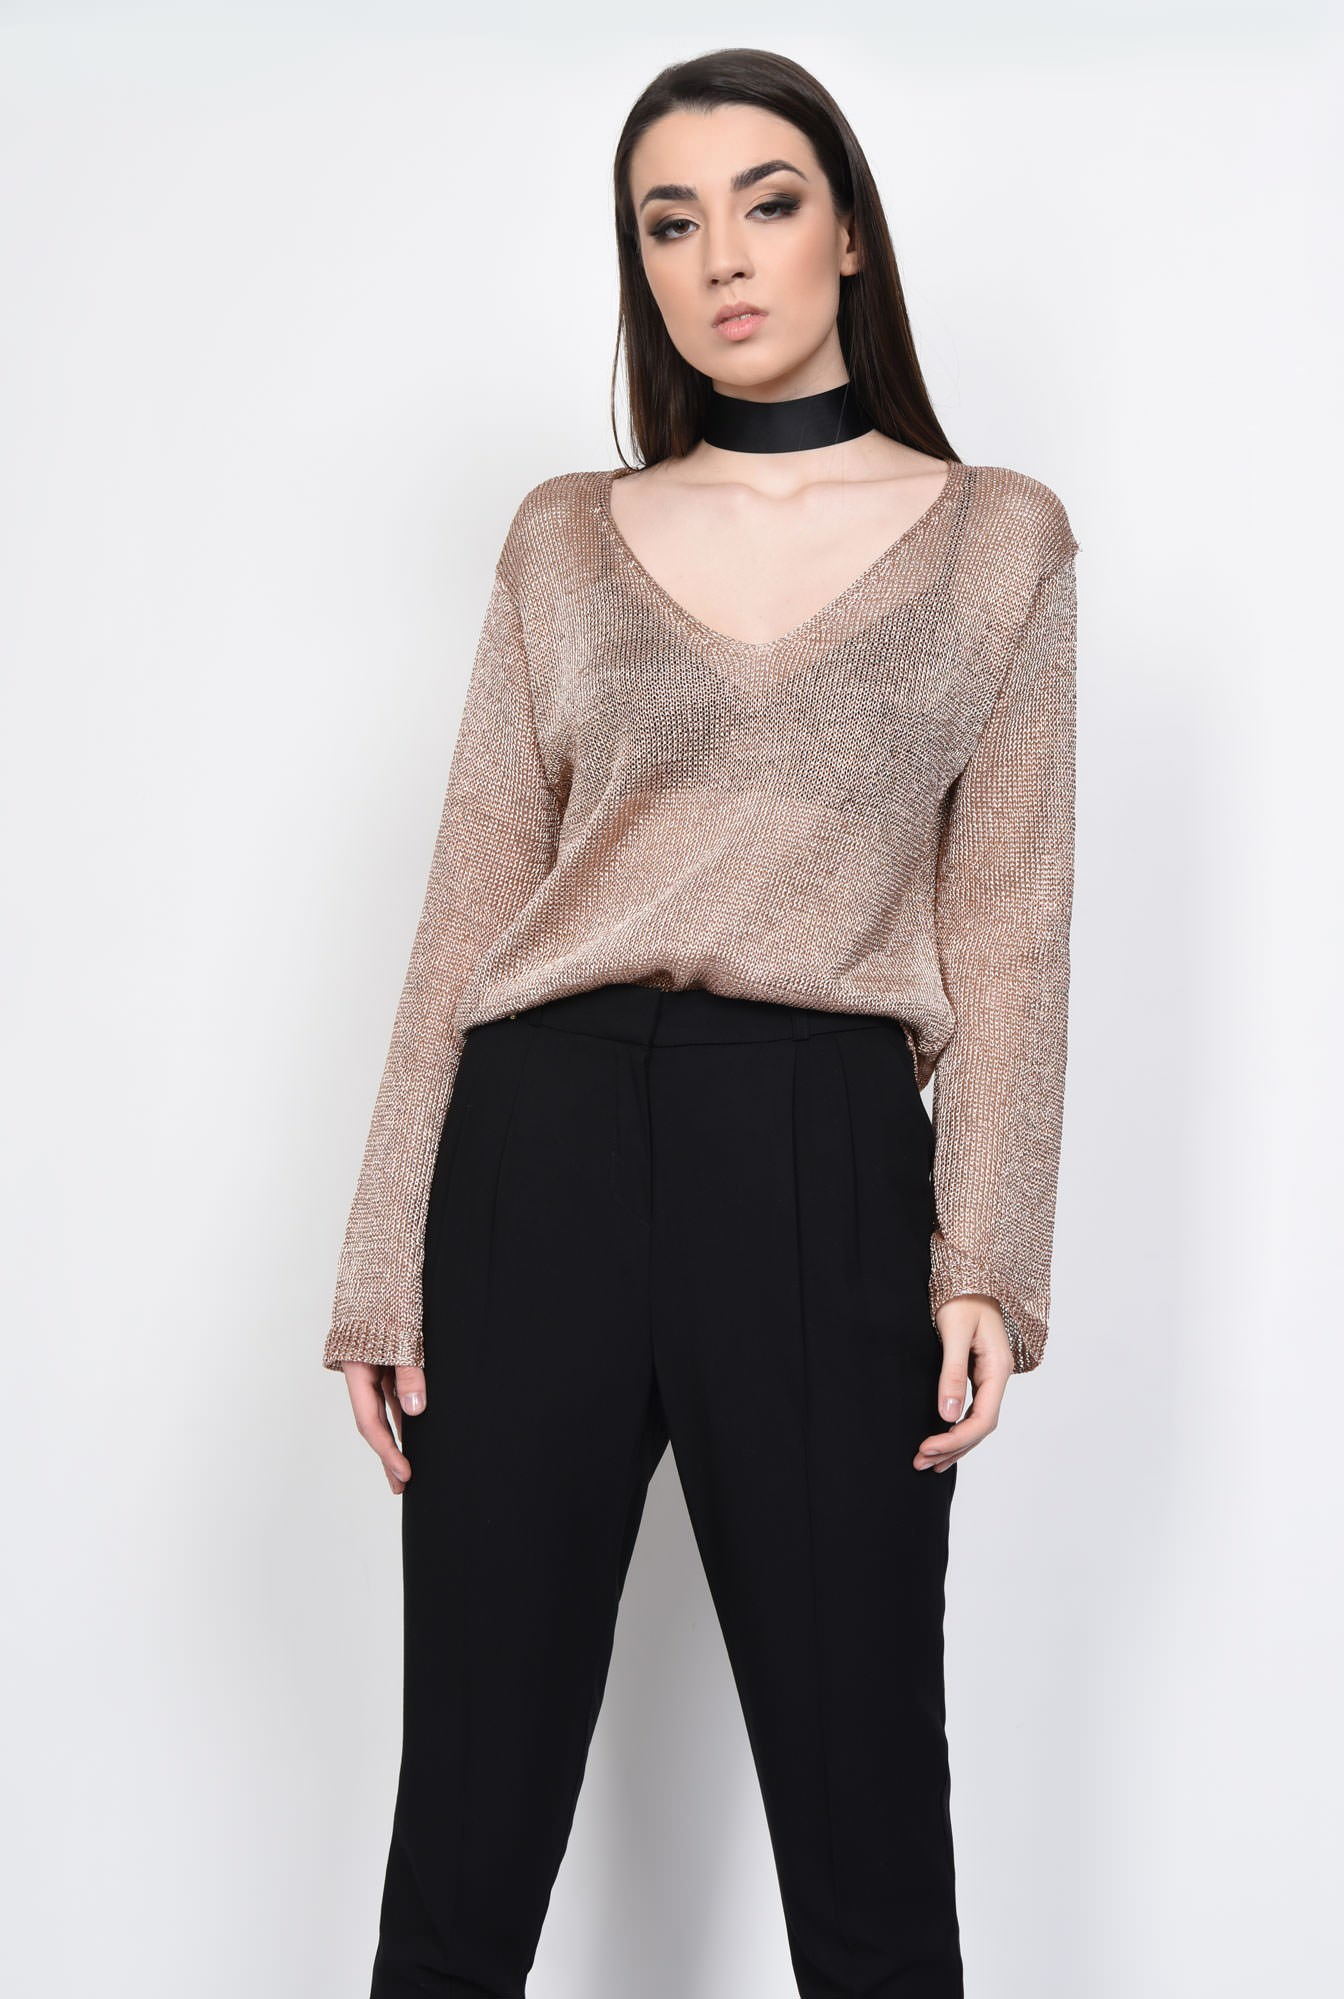 0 - PULOVER CASUAL PL15021707-ROZ